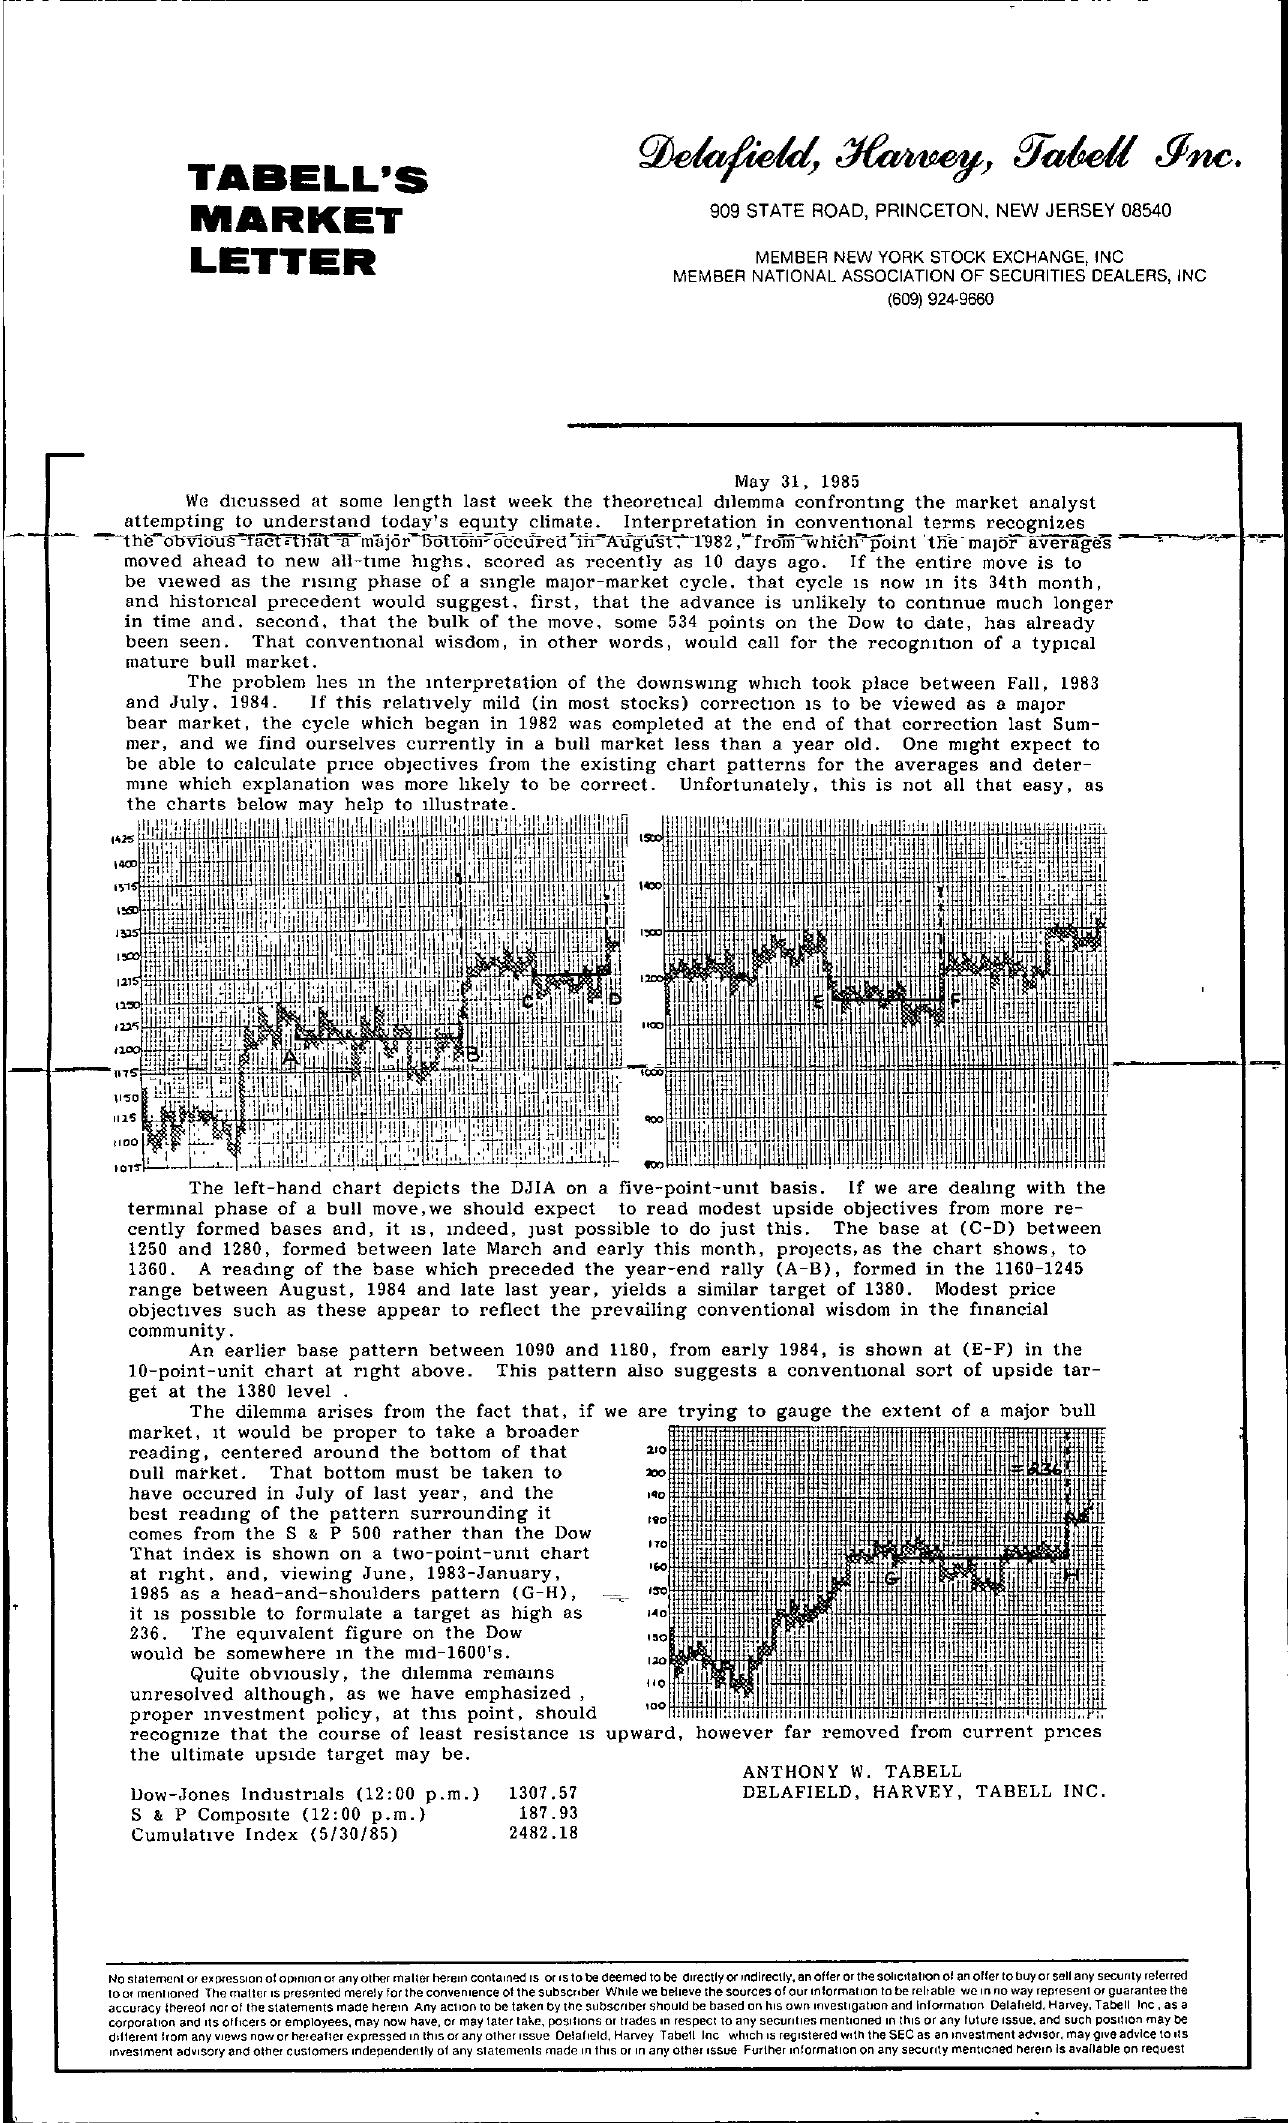 Tabell's Market Letter - May 31, 1985